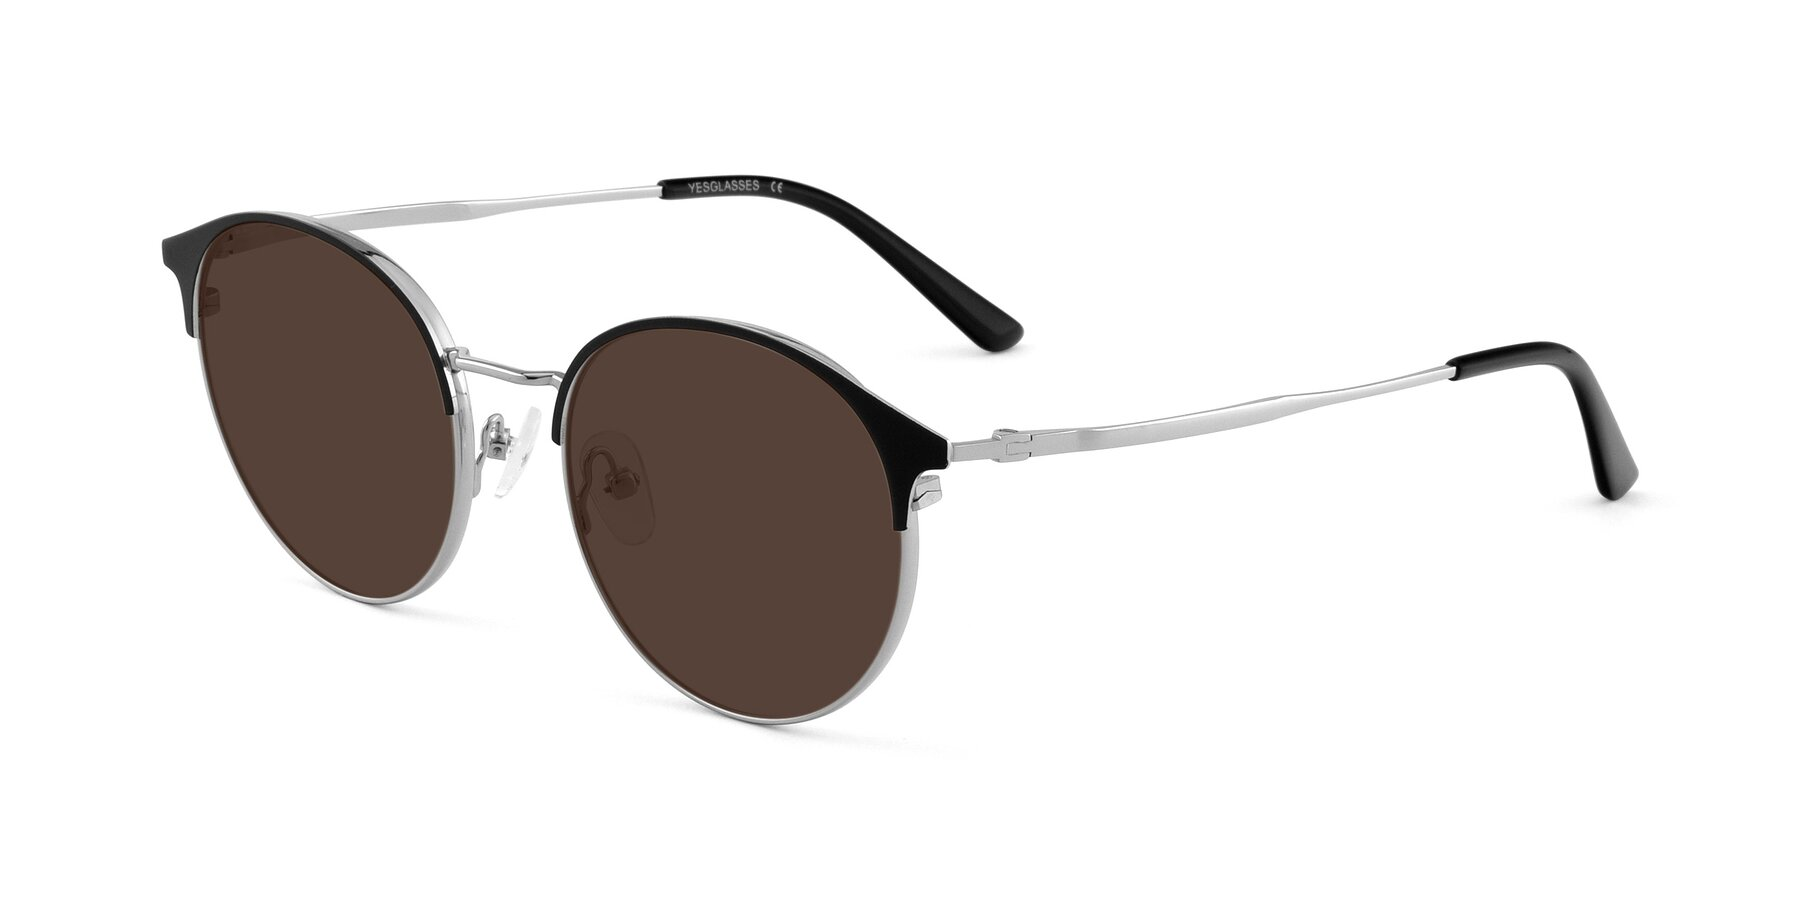 Angle of Berkley in Black-Silver with Brown Tinted Lenses